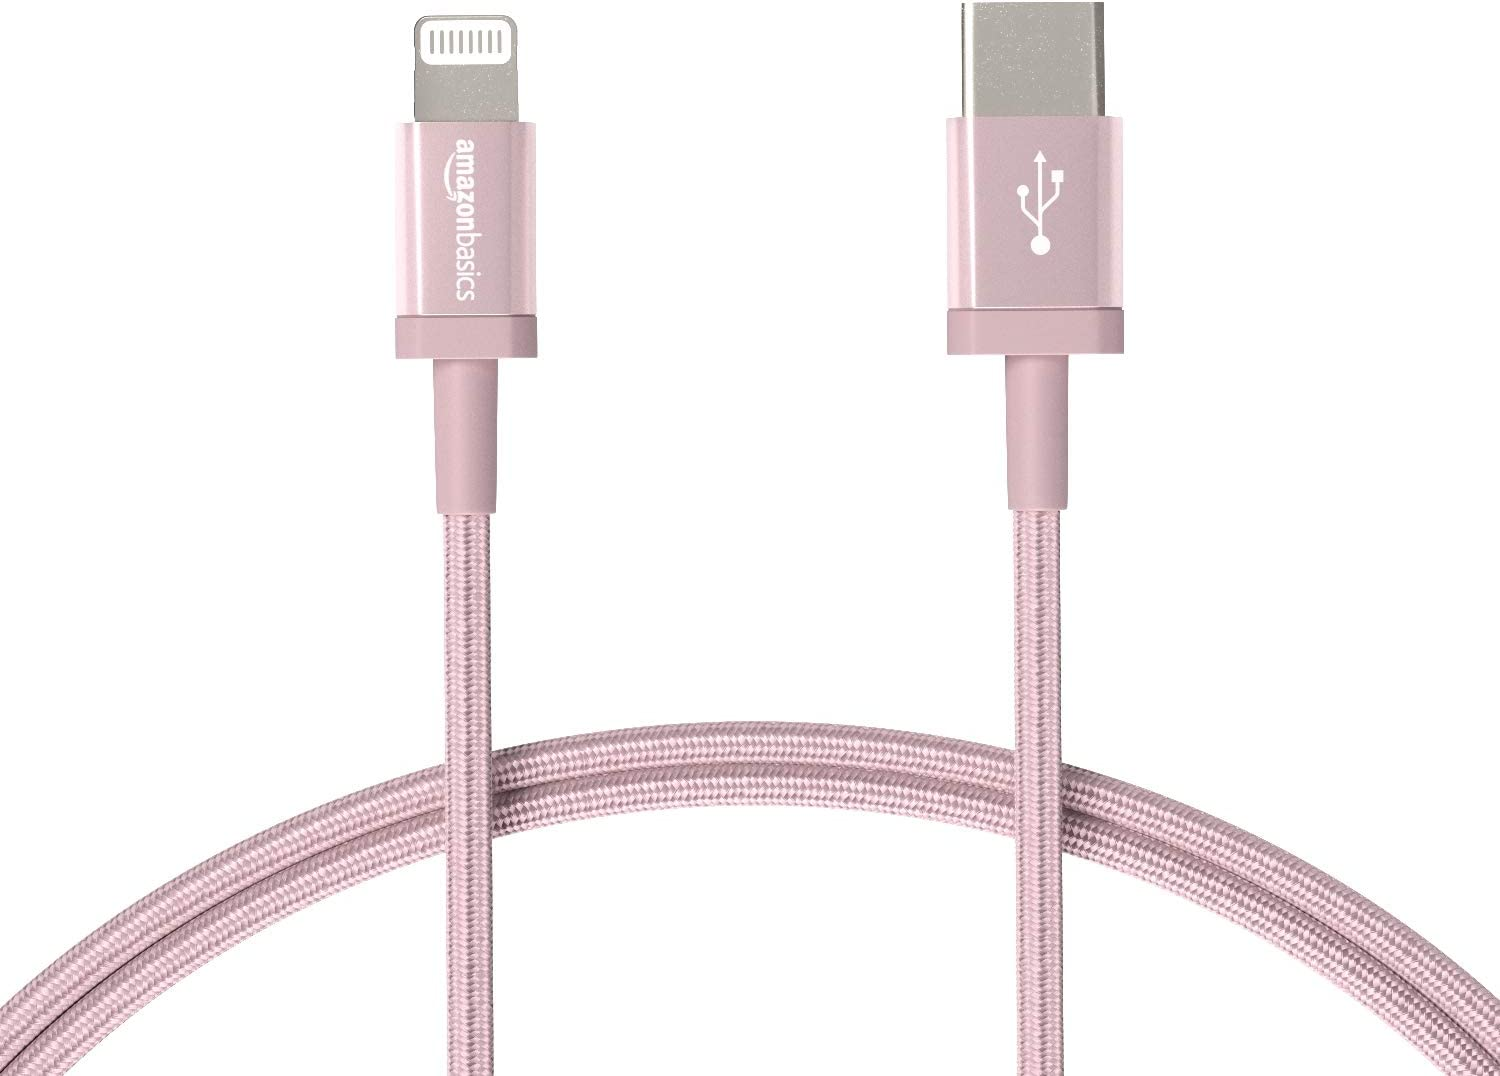 AmazonBasics Nylon Braided USB-C to Lightning Cable, MFi Certified Charger for iPhone 11 Pro/11 Pro Max - Rose Gold, 3-Foot